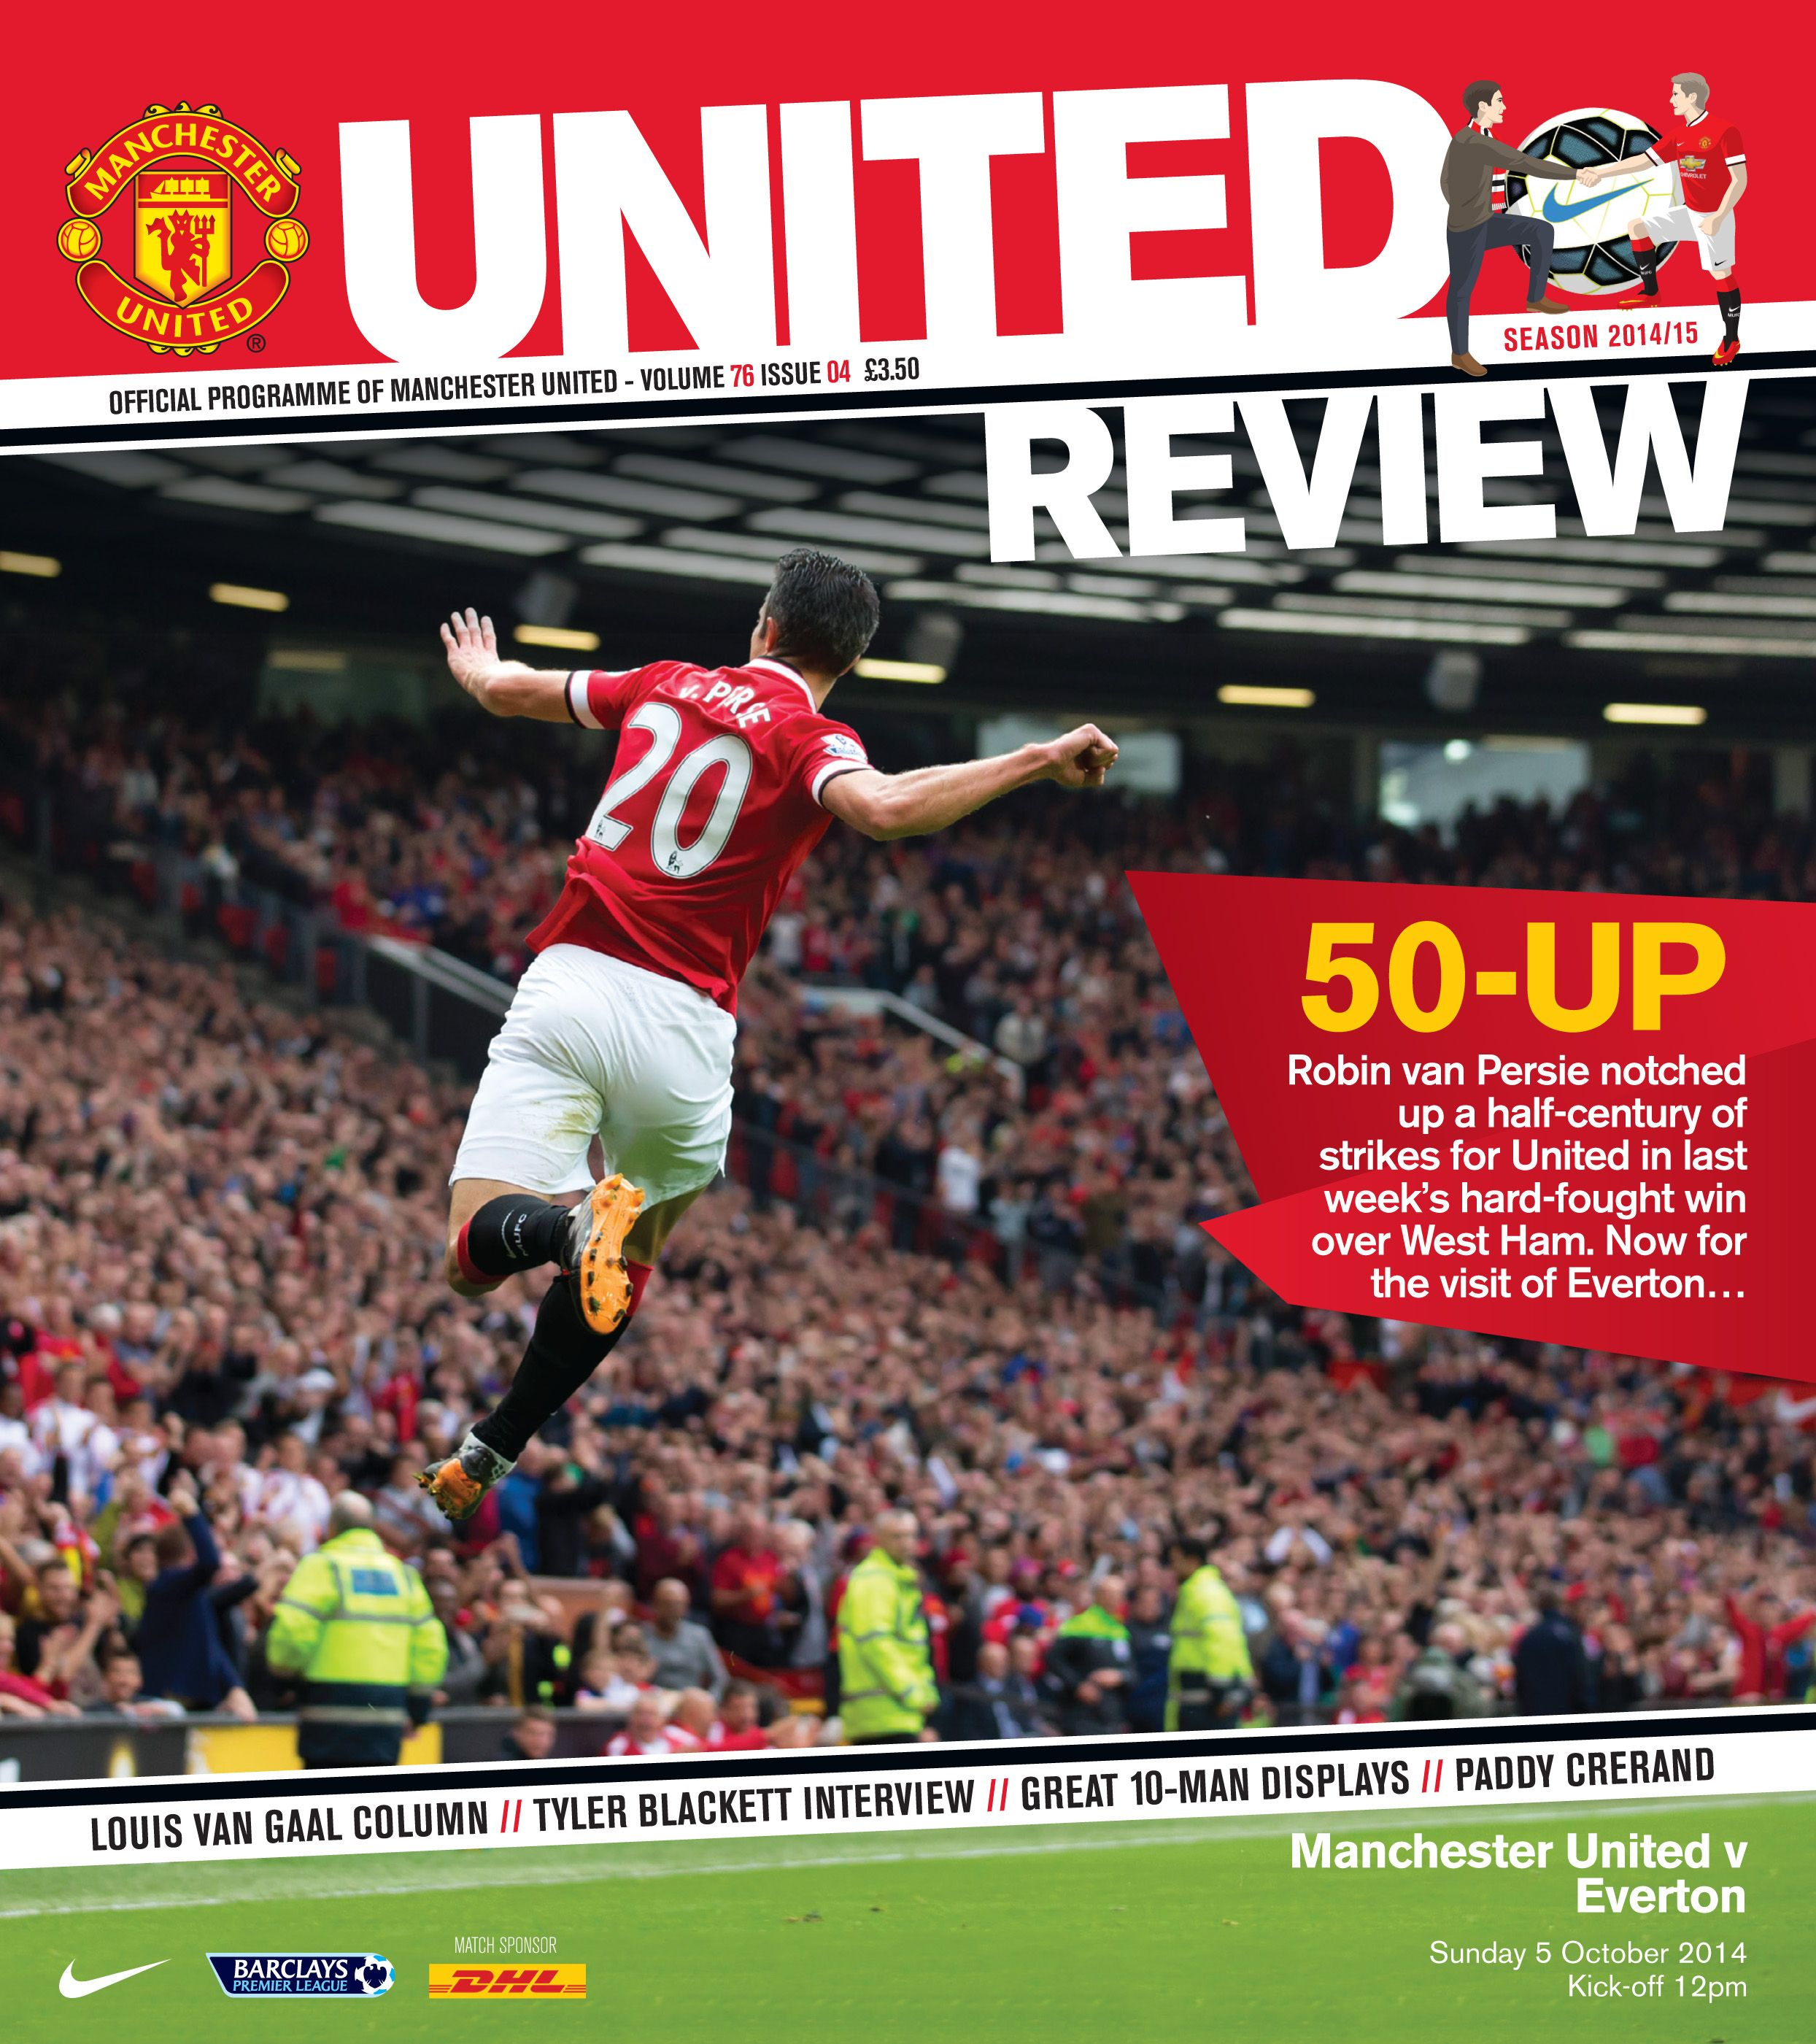 front cover of united review for the manutd home game. Black Bedroom Furniture Sets. Home Design Ideas